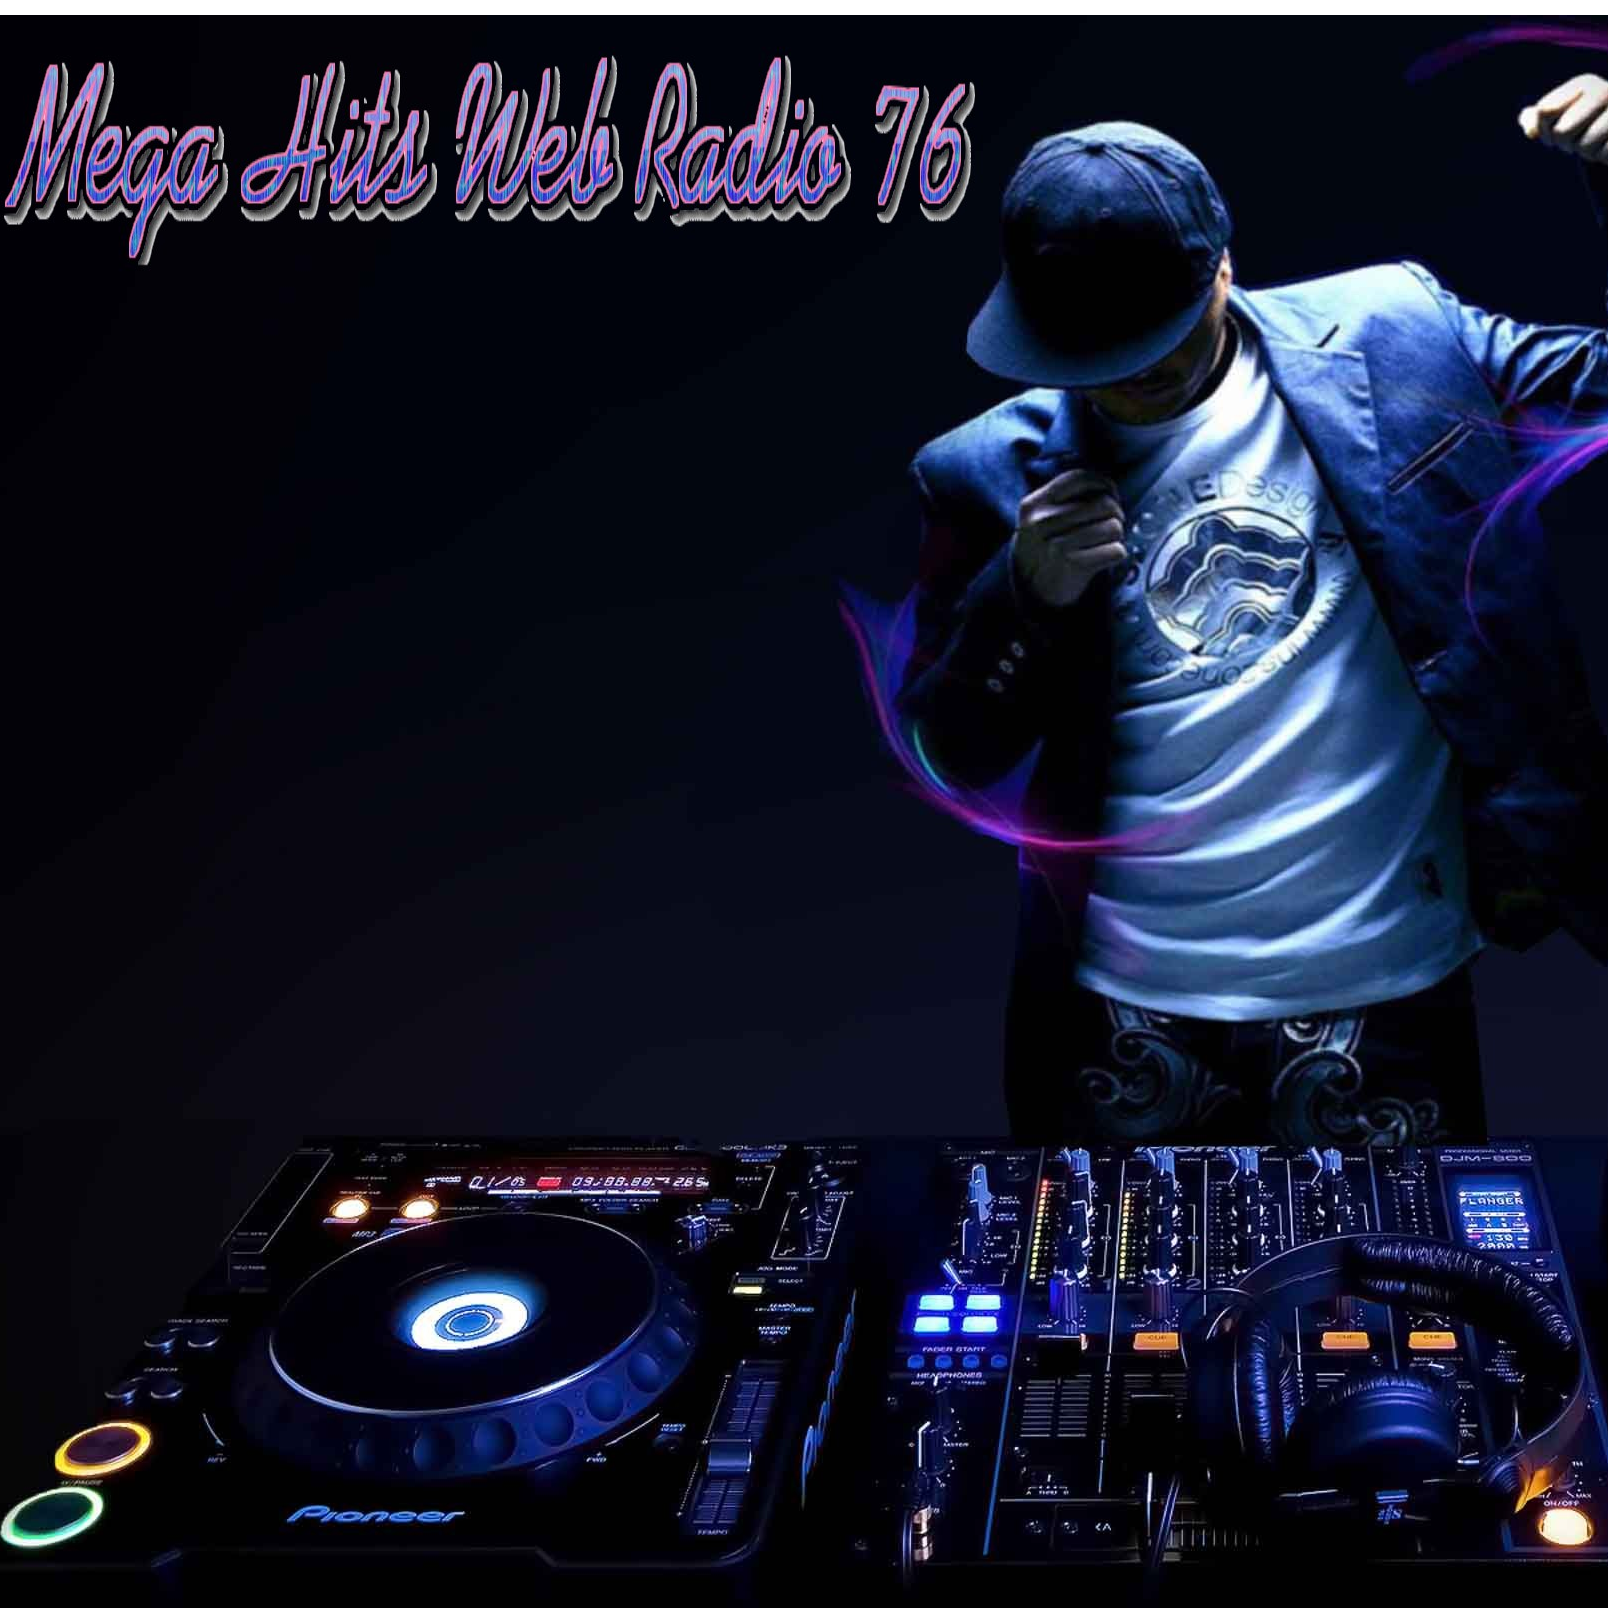 MEGA HITS WEB RADIO 76